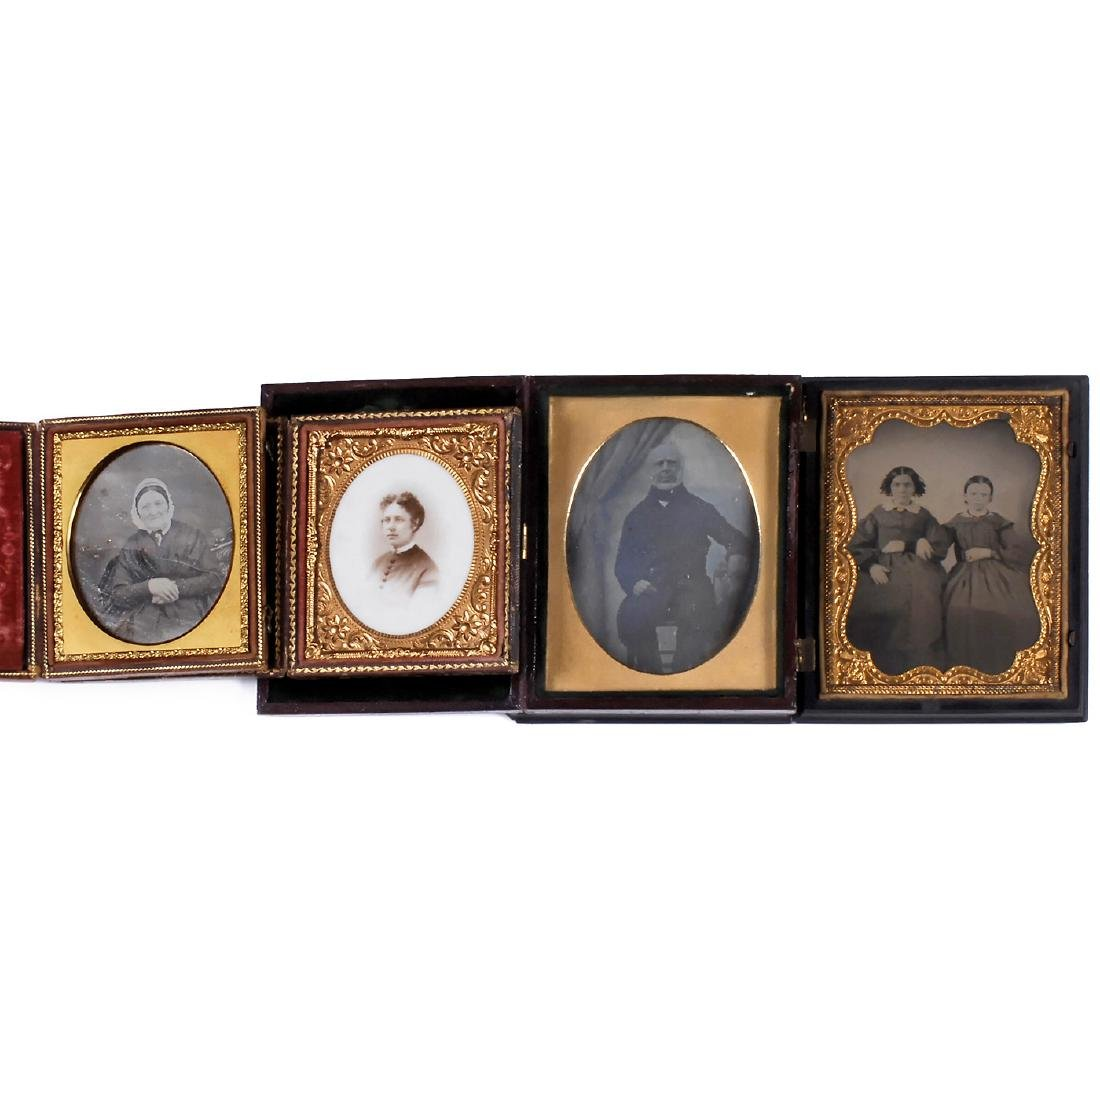 2 Daguerreotypes and Other Images, 1845-55